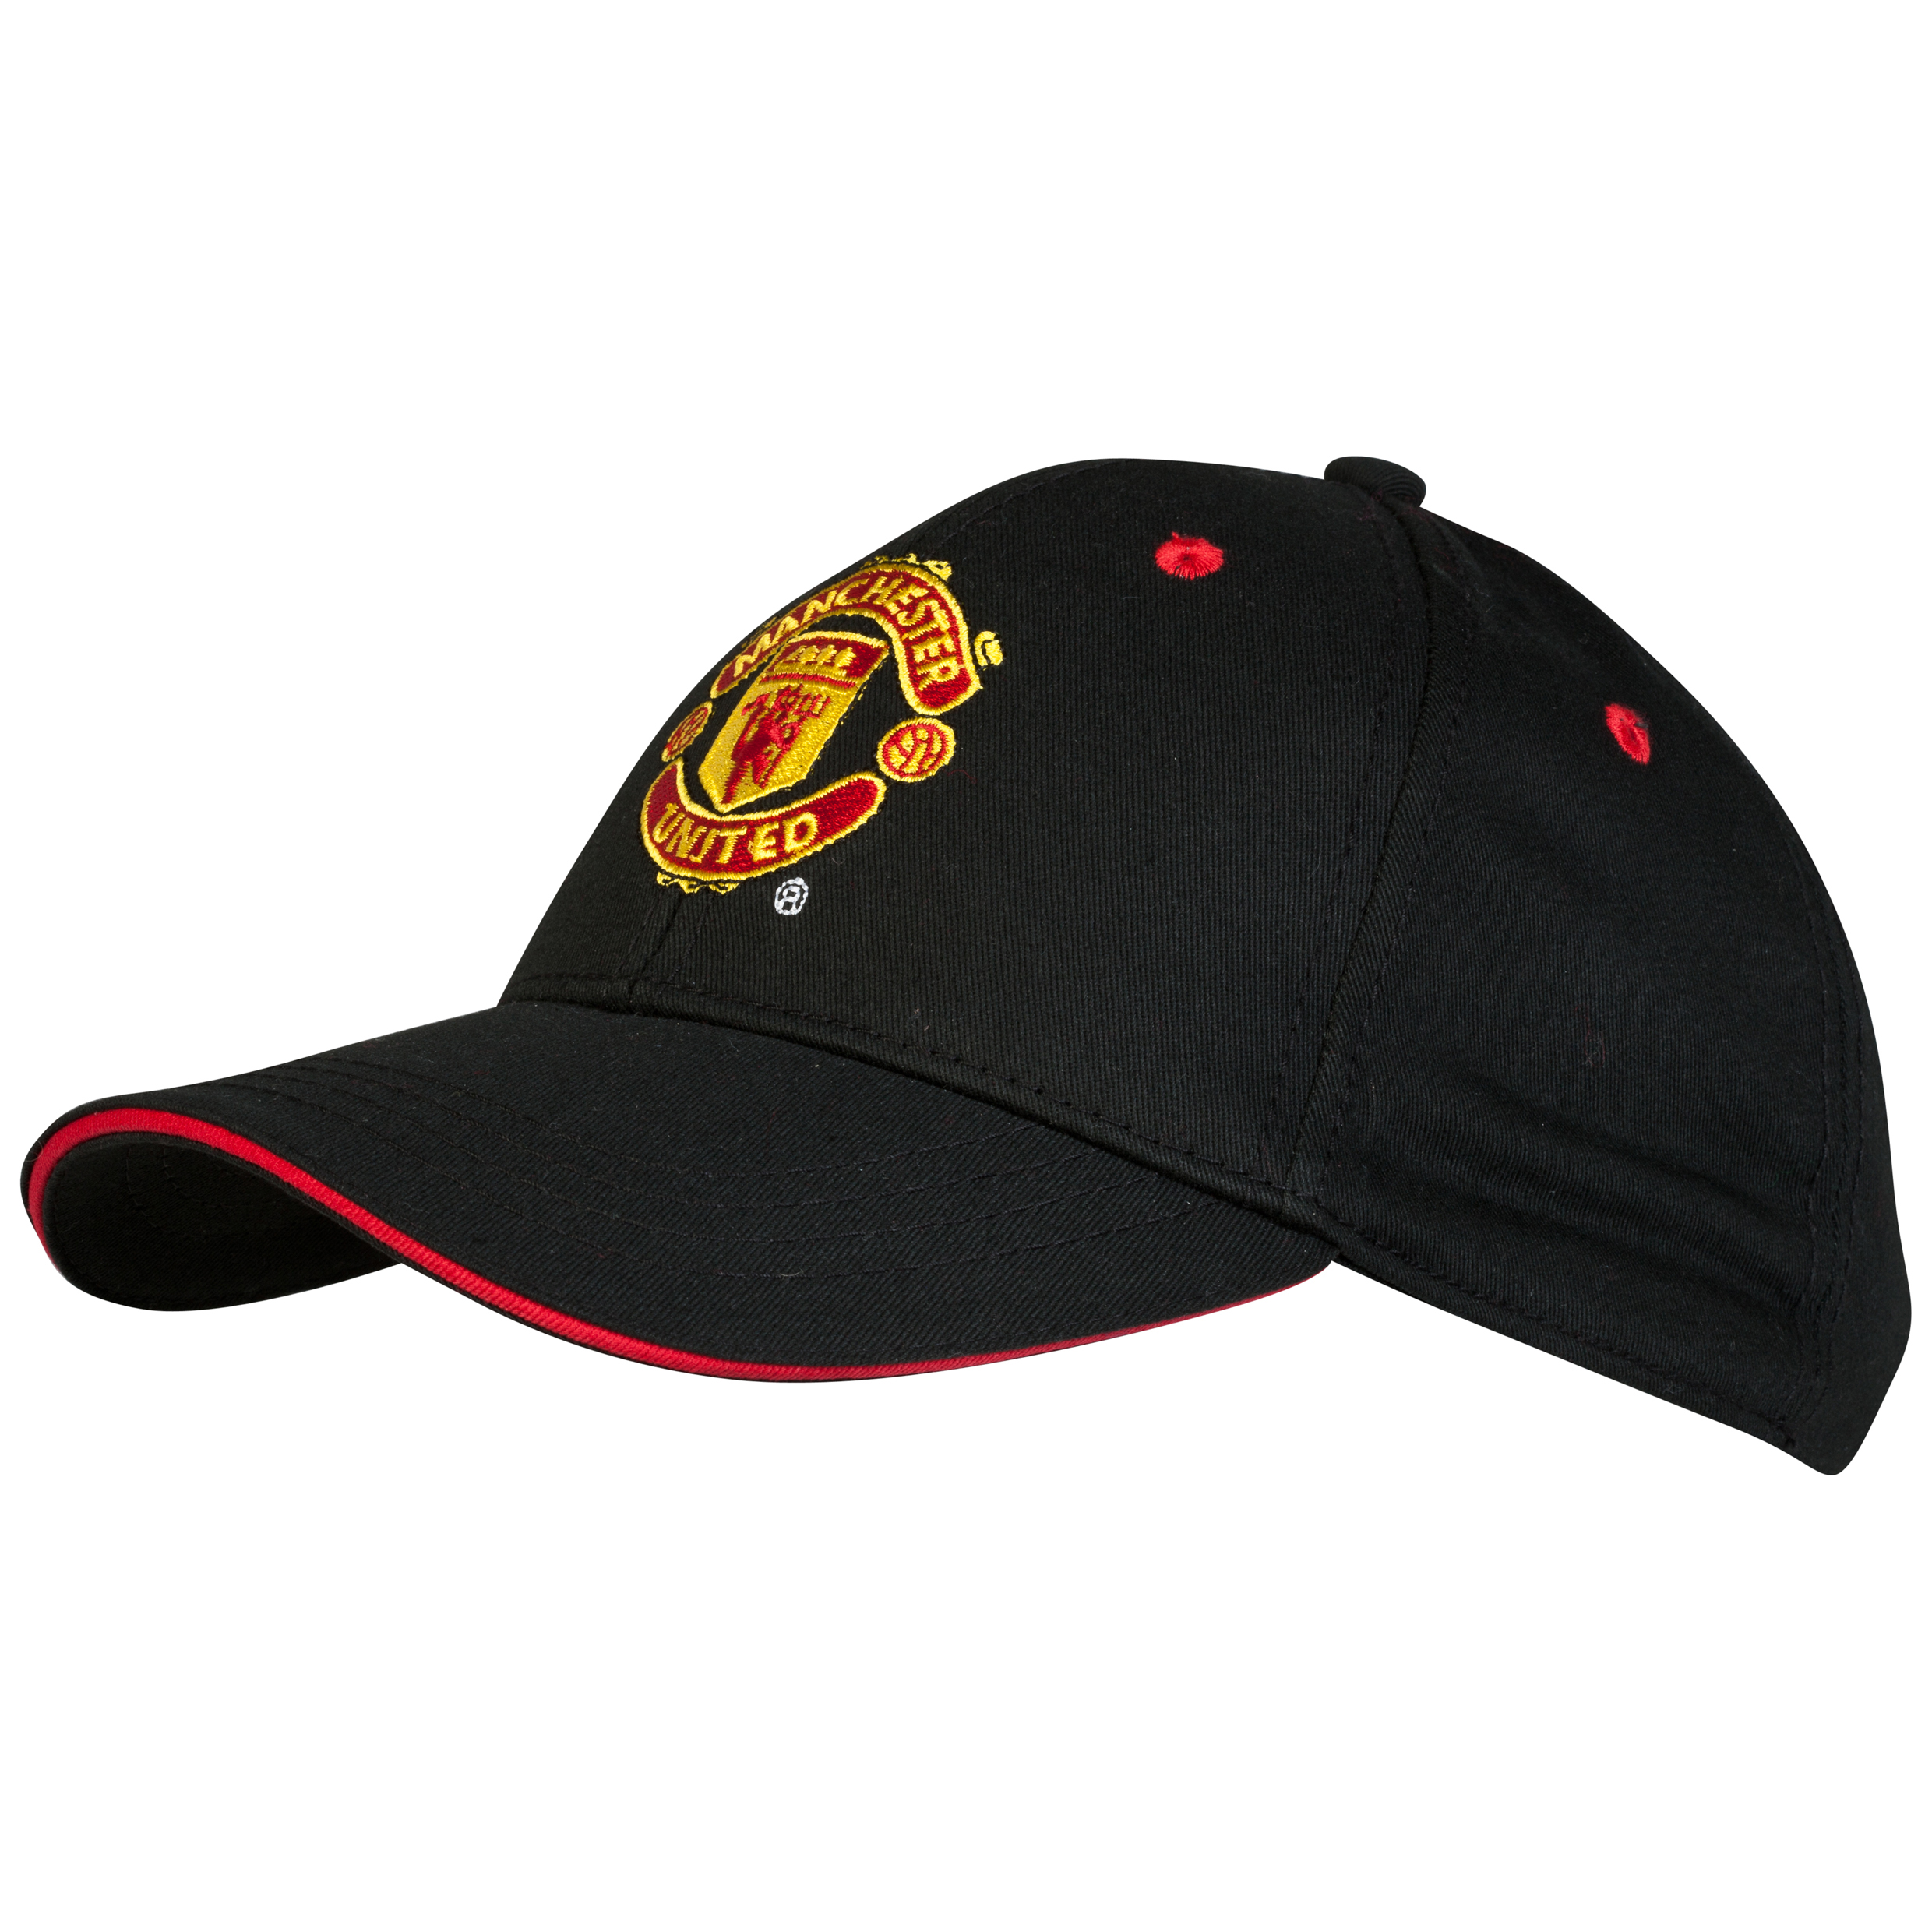 Manchester United Core Crest Cap - Adult Black